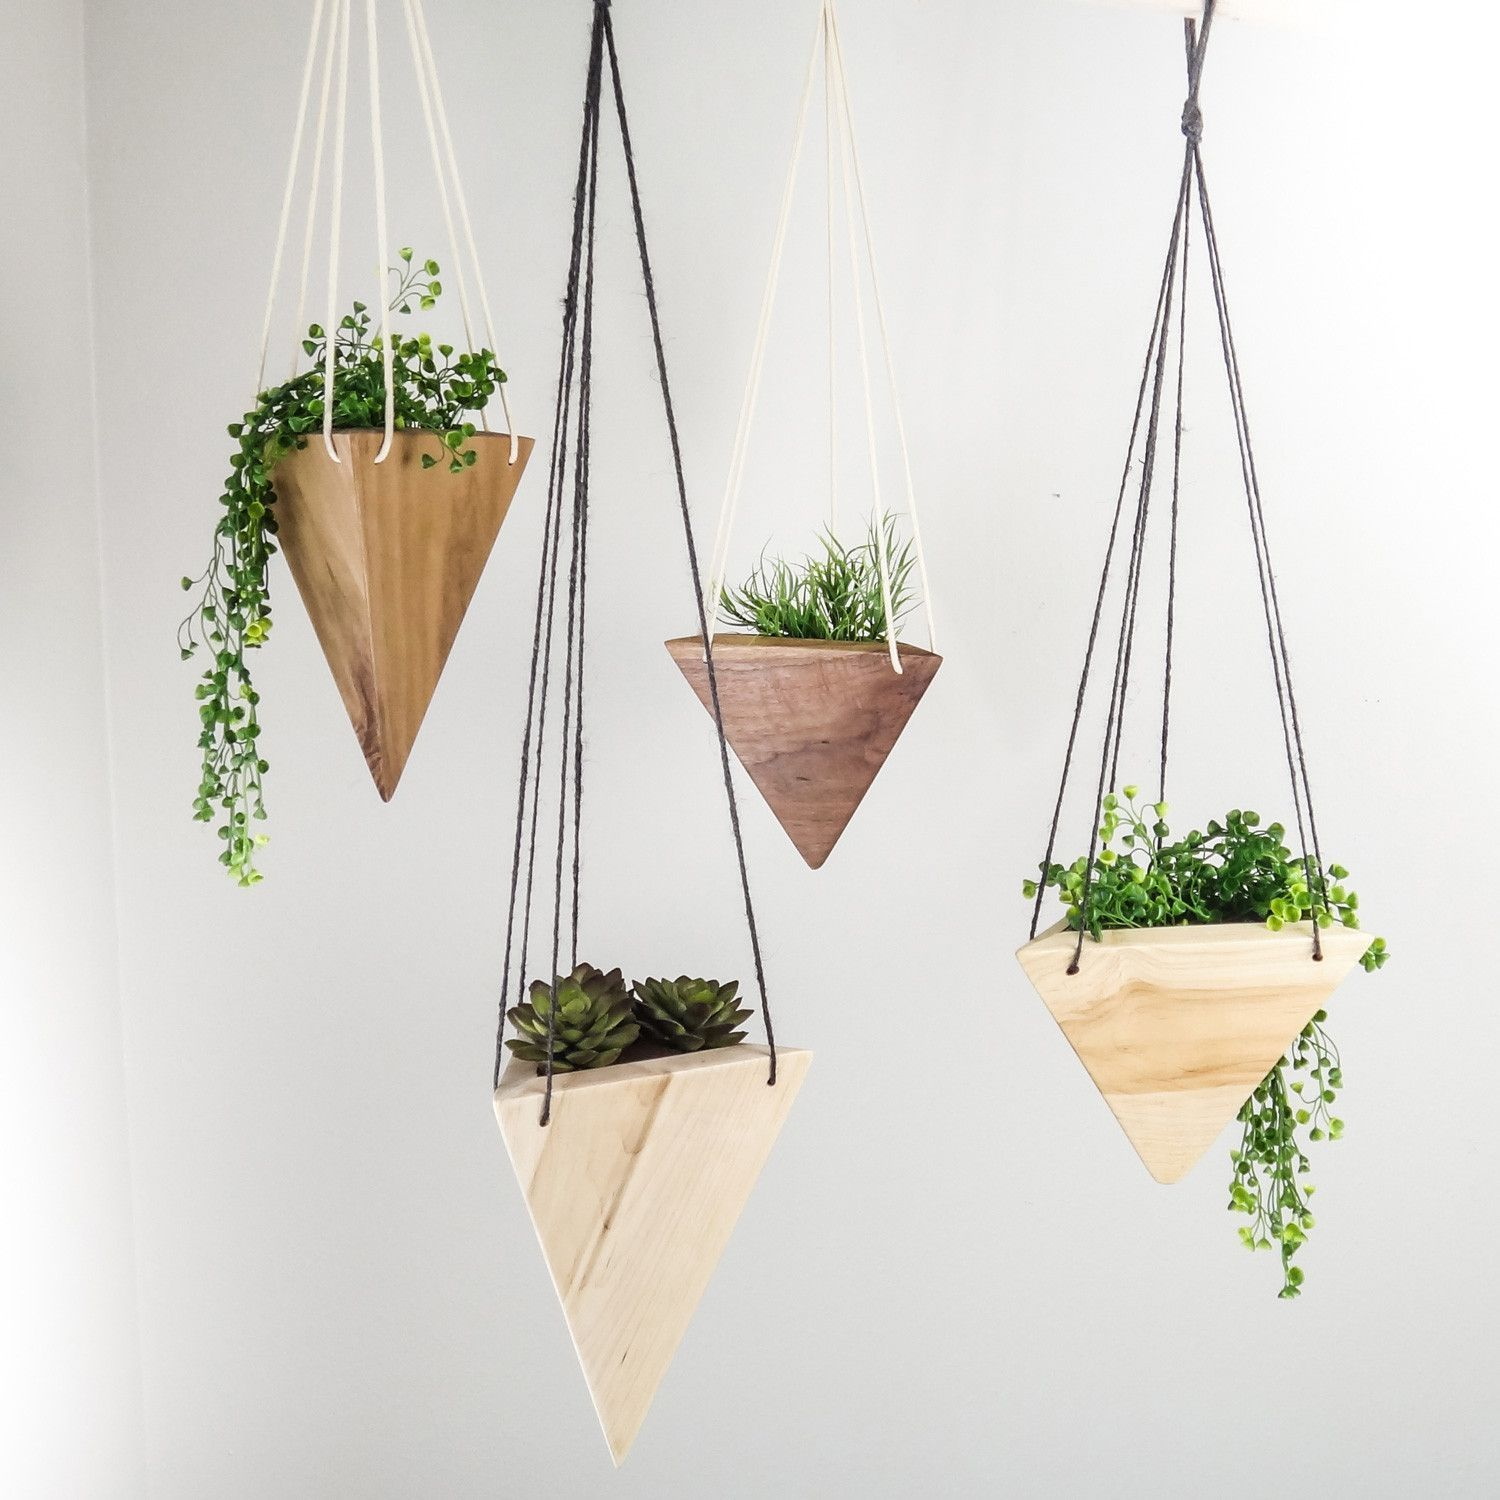 Cozy house plants decoration ideas for indoor 03